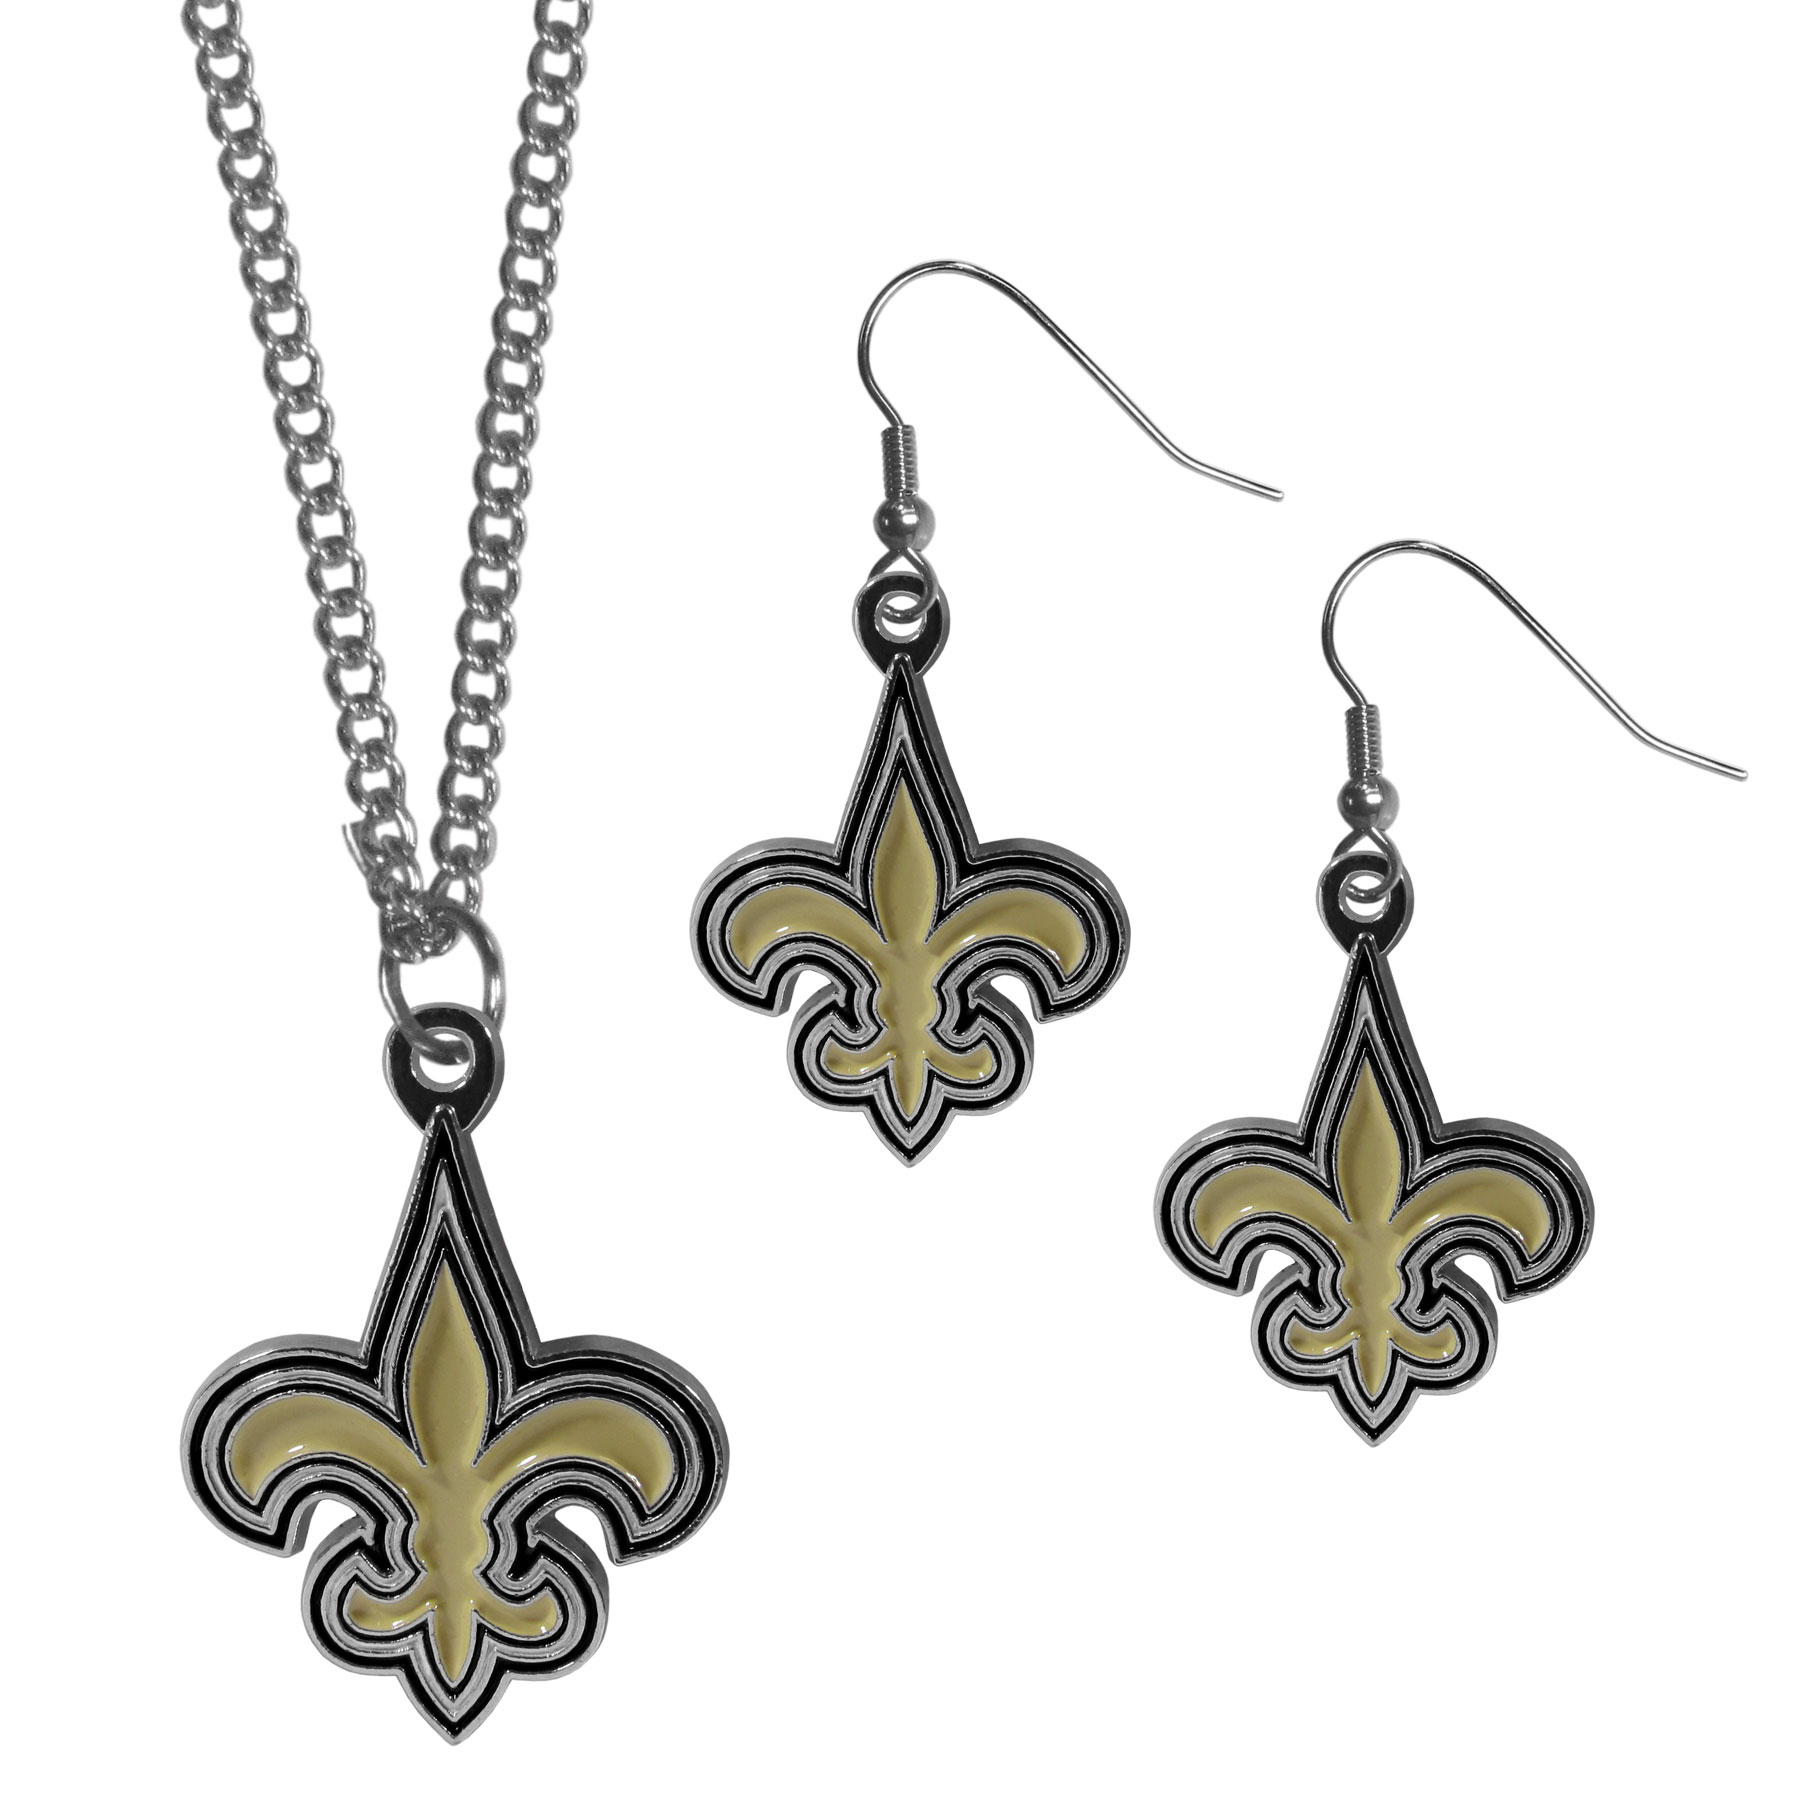 New Orleans Saints Dangle Earrings and Chain Necklace Set - This classic jewelry set contains are most popular New Orleans Saints dangle earrings and 22 inch chain necklace. The trendy, dangle earrings are lightweight and feature a fully cast metal team charm with enameled team colors. The matching necklace completes this fashion forward combo and is a spirited set that is perfect for game day but nice enough for everyday.